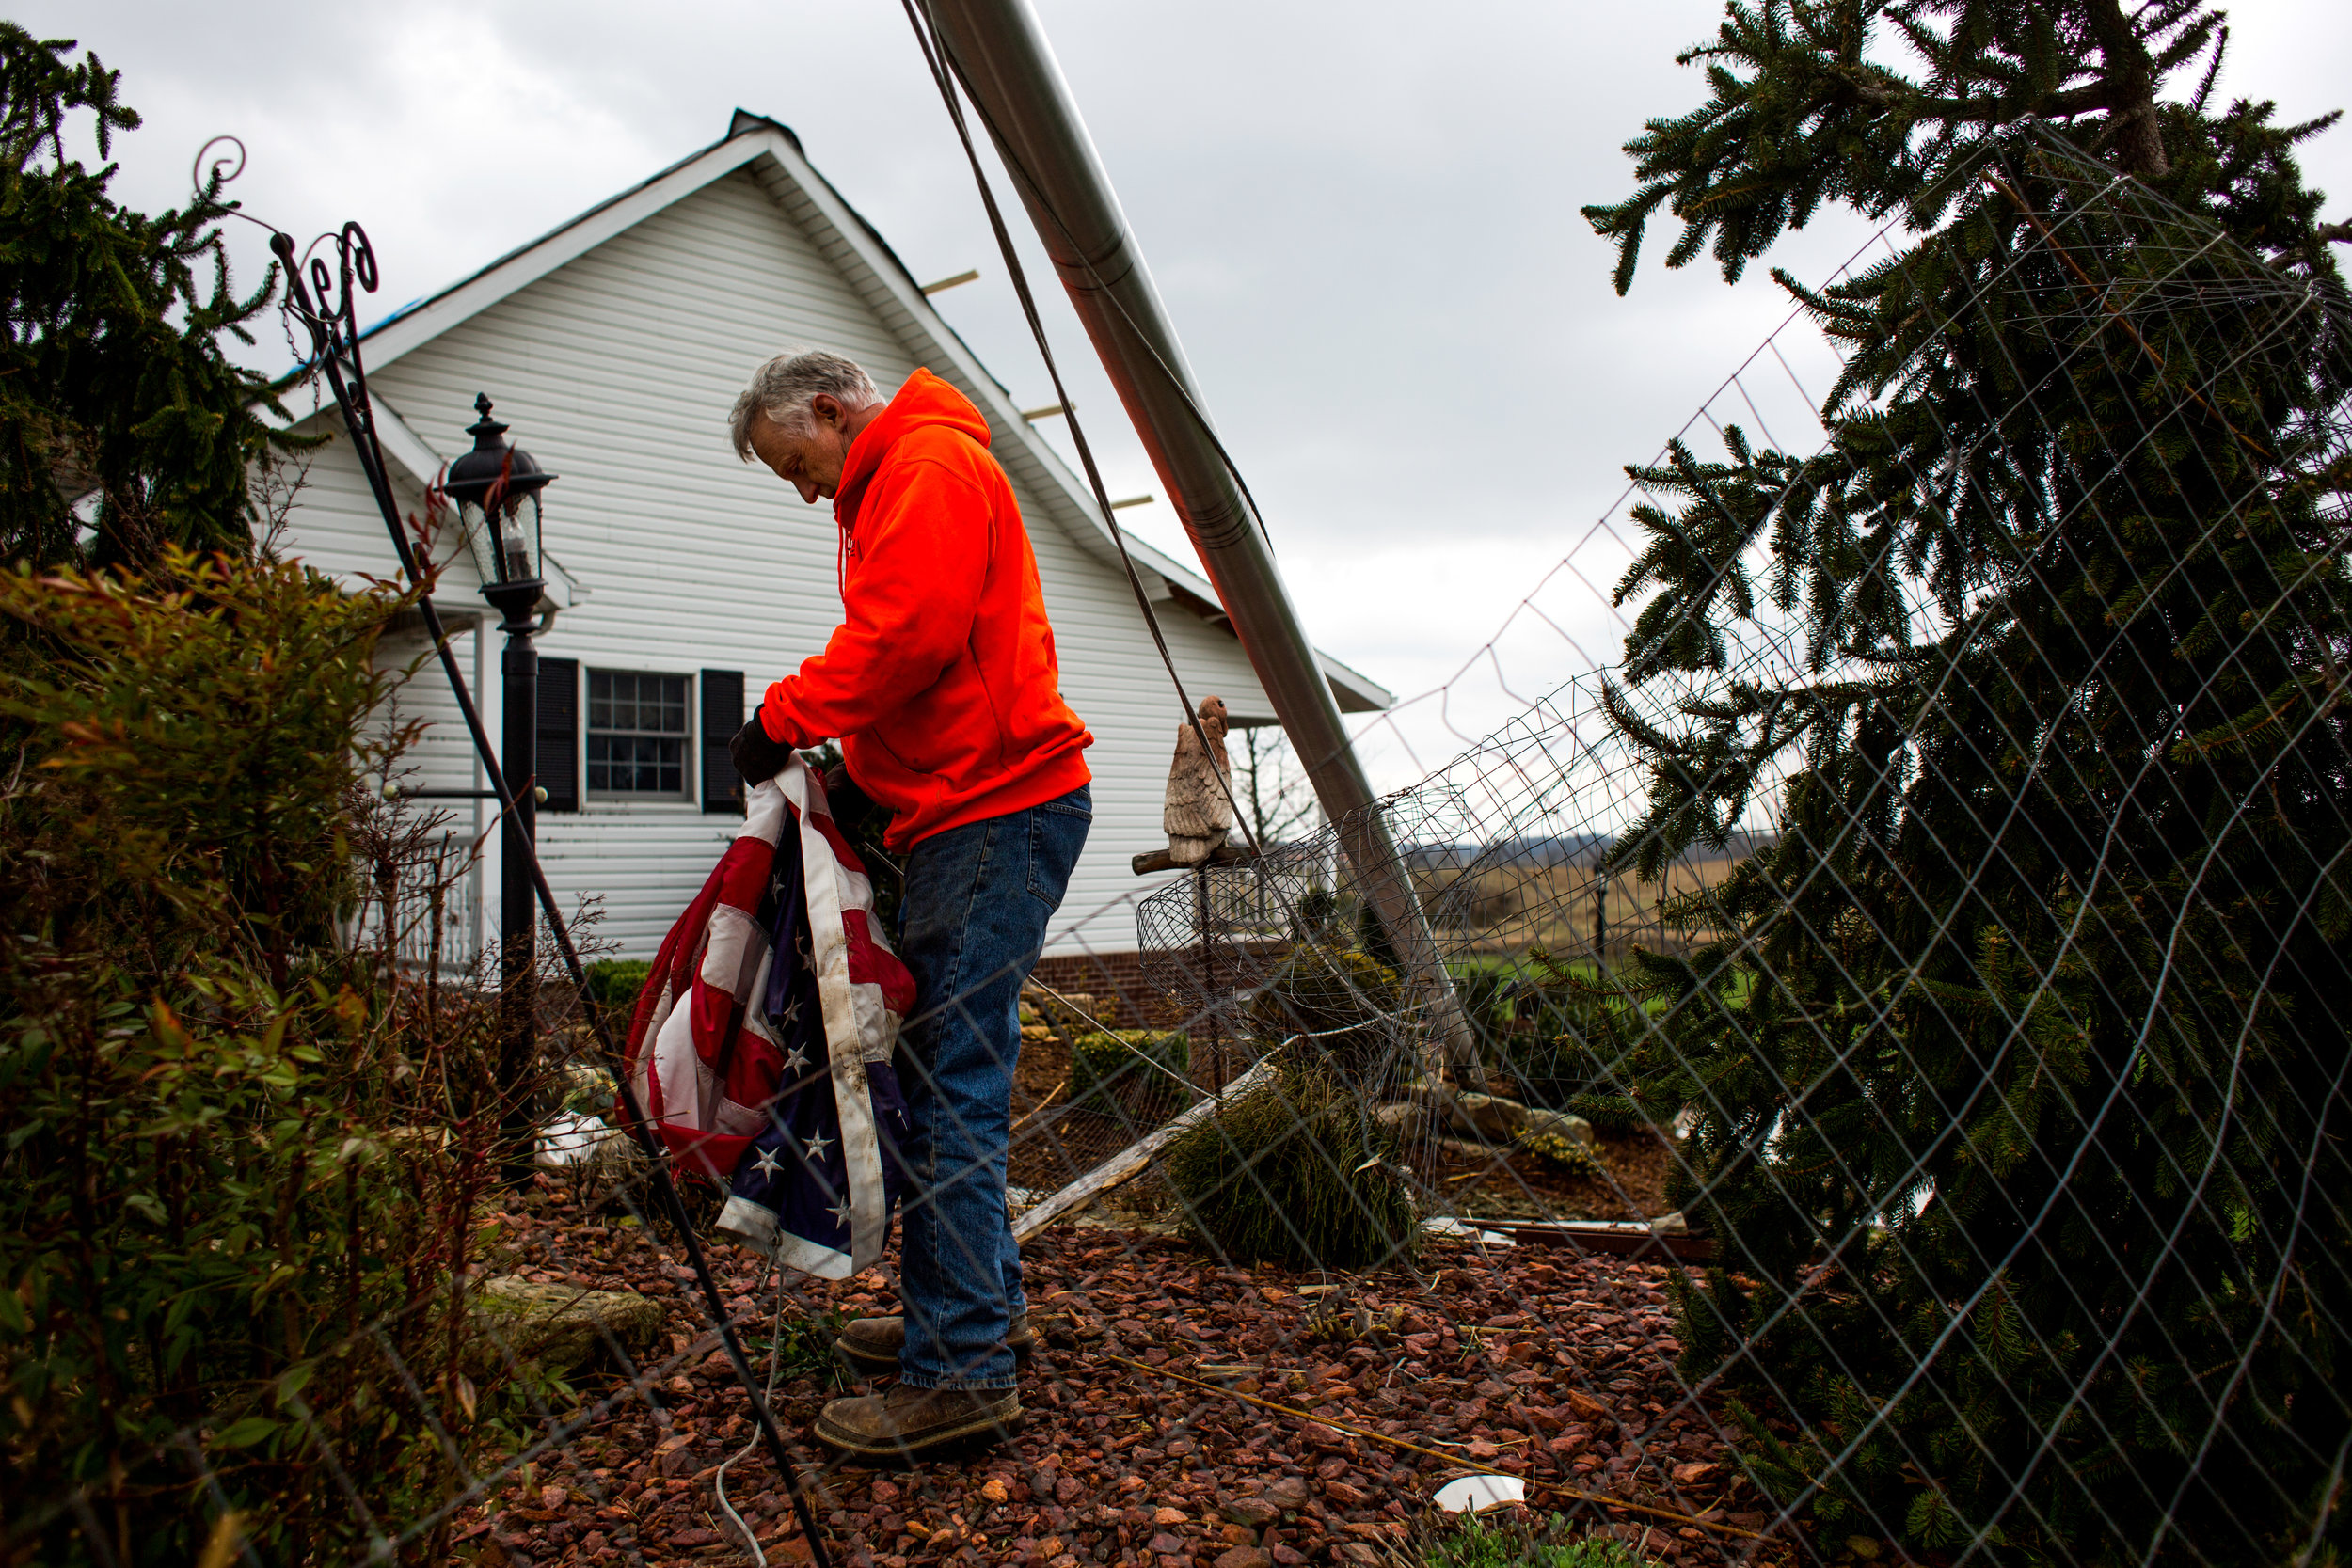 "Lenny Marks of Jasper picked up a flag from a fallen flag pole Wednesday morning outside the home of his friend, Sam Schwenk, in Ireland. Marks helped salvage items and clear debris after a tornado hit and damaged Schwenk's home and barn. ""All my keepsakes blew away,"" Schwenk said. ""I'm still in a state of shock."""